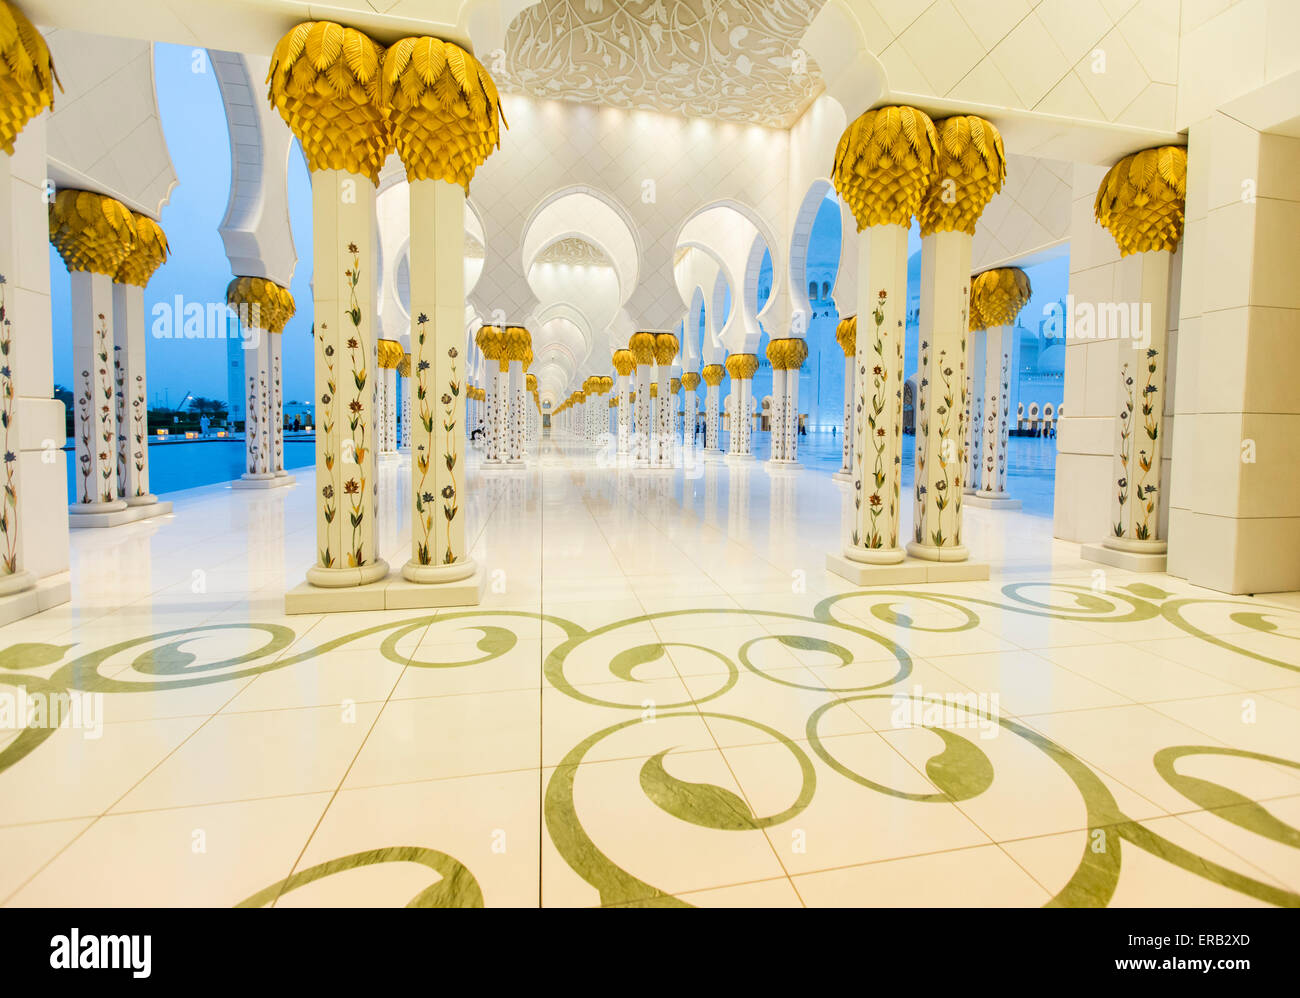 Sheikh Zayed Moschee in Abu Dhabi. Stockbild